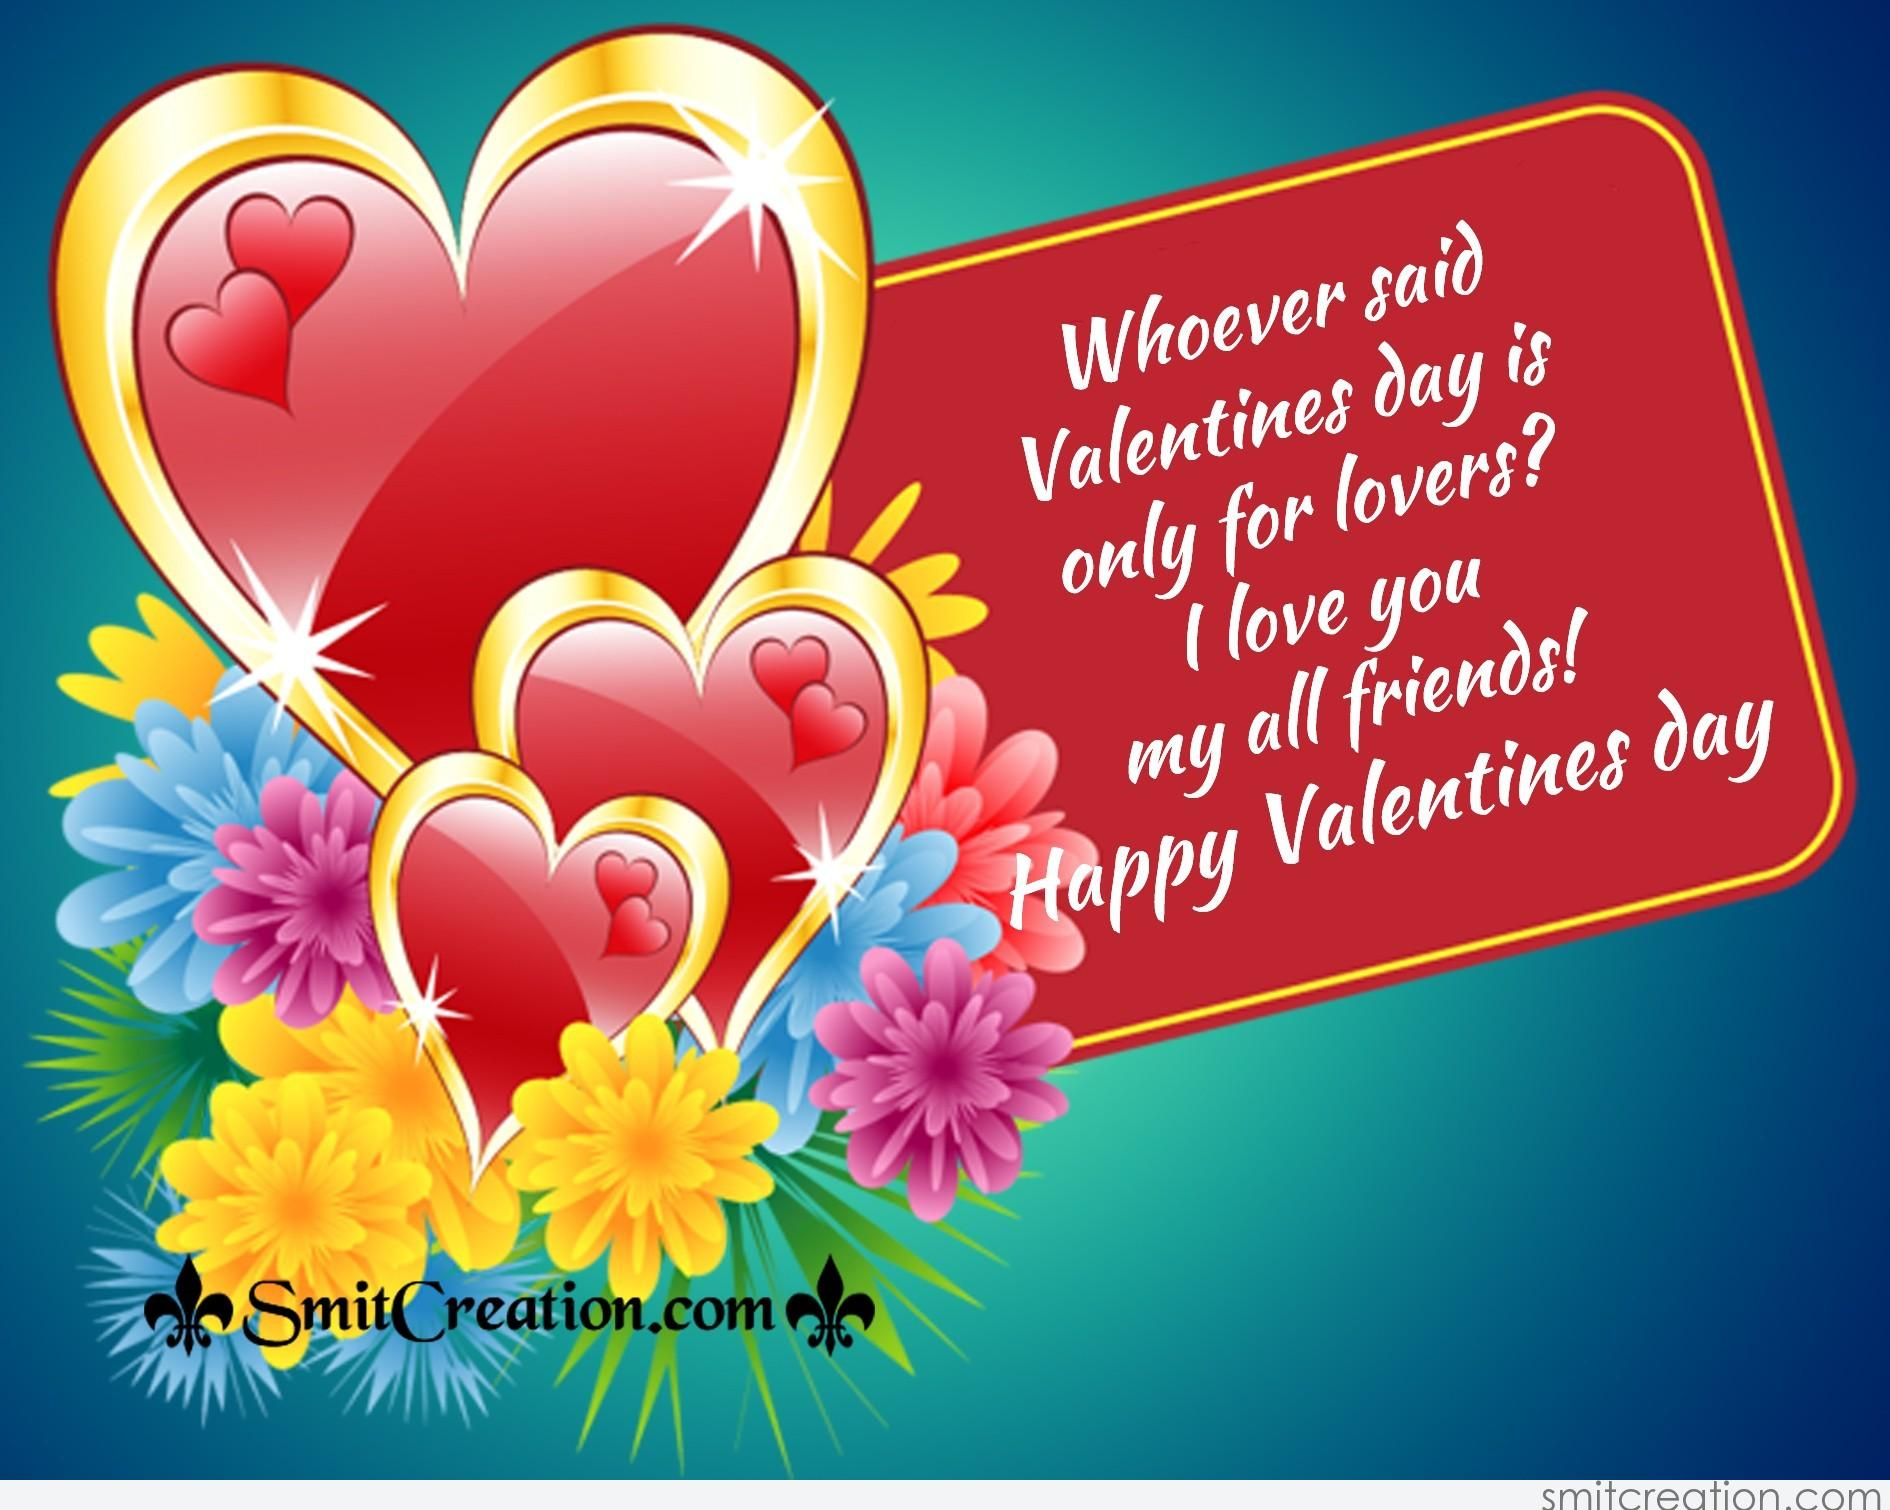 Happy Valentines Day My Dear Friend Facebook thumbnail